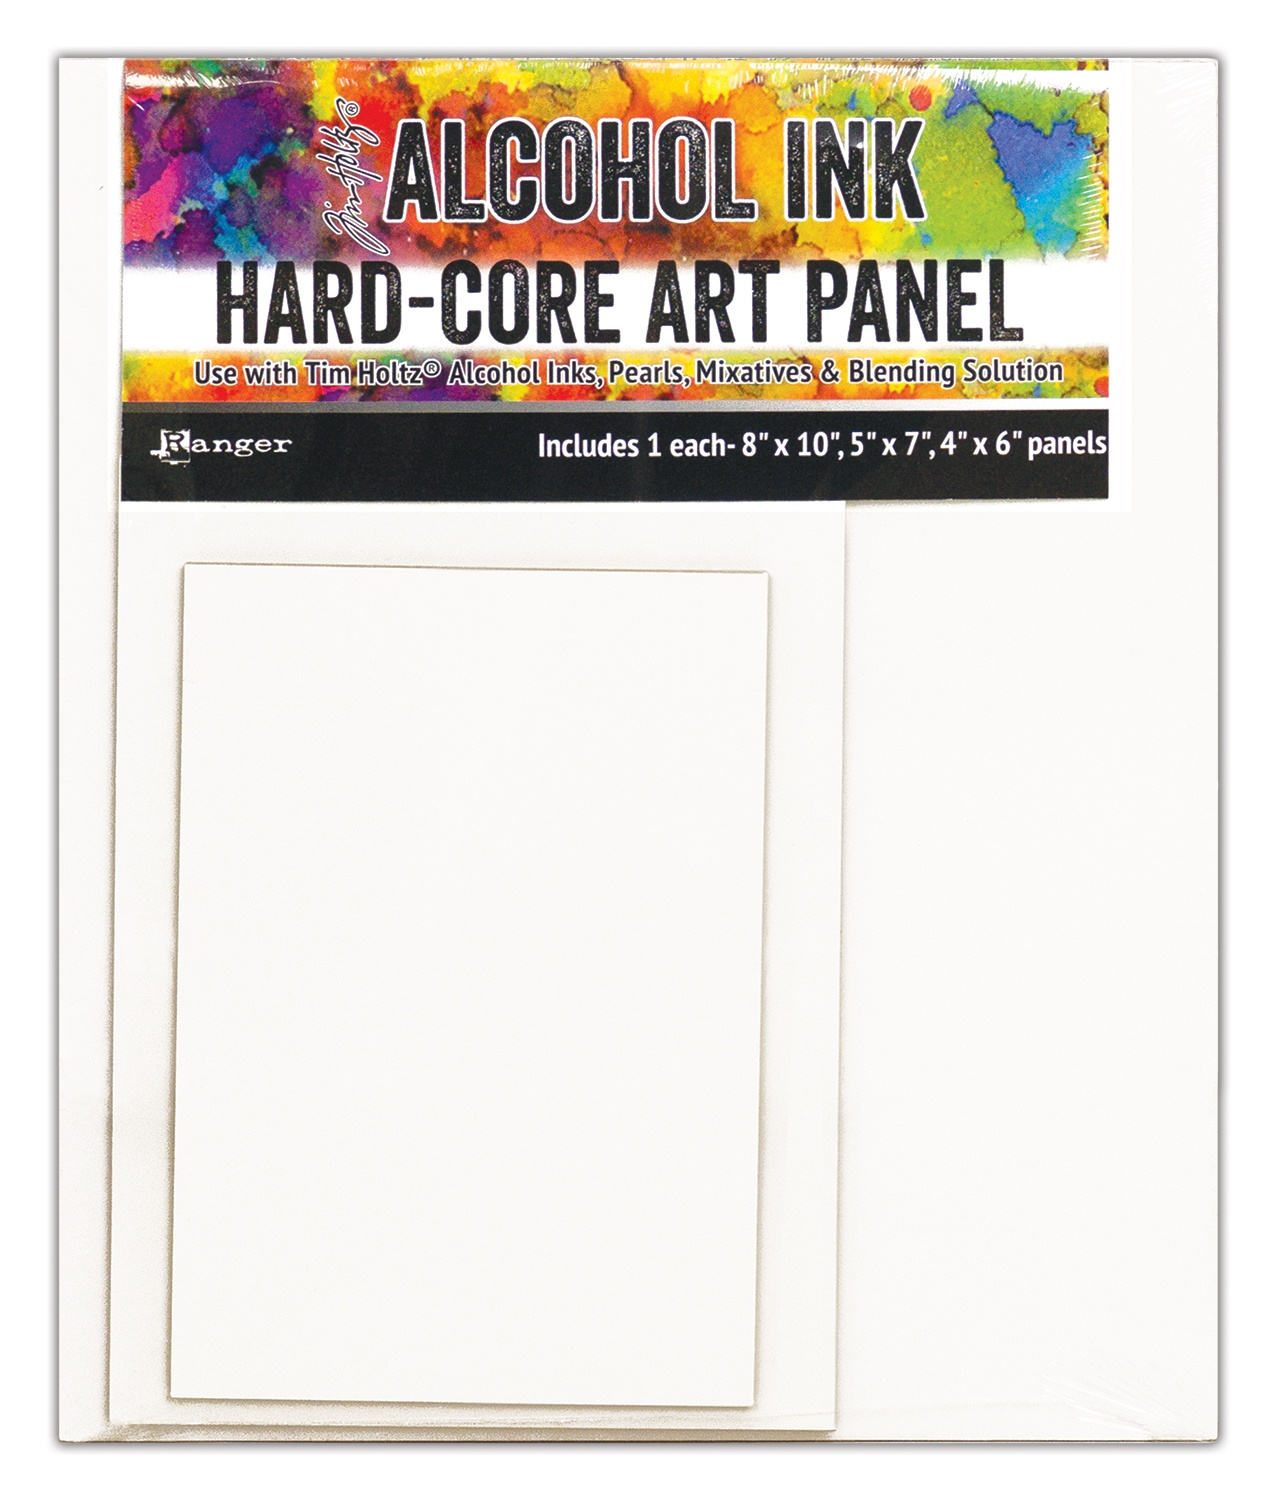 Alcohol Ink Hard-Core Panel 8x10 5x7 4x6